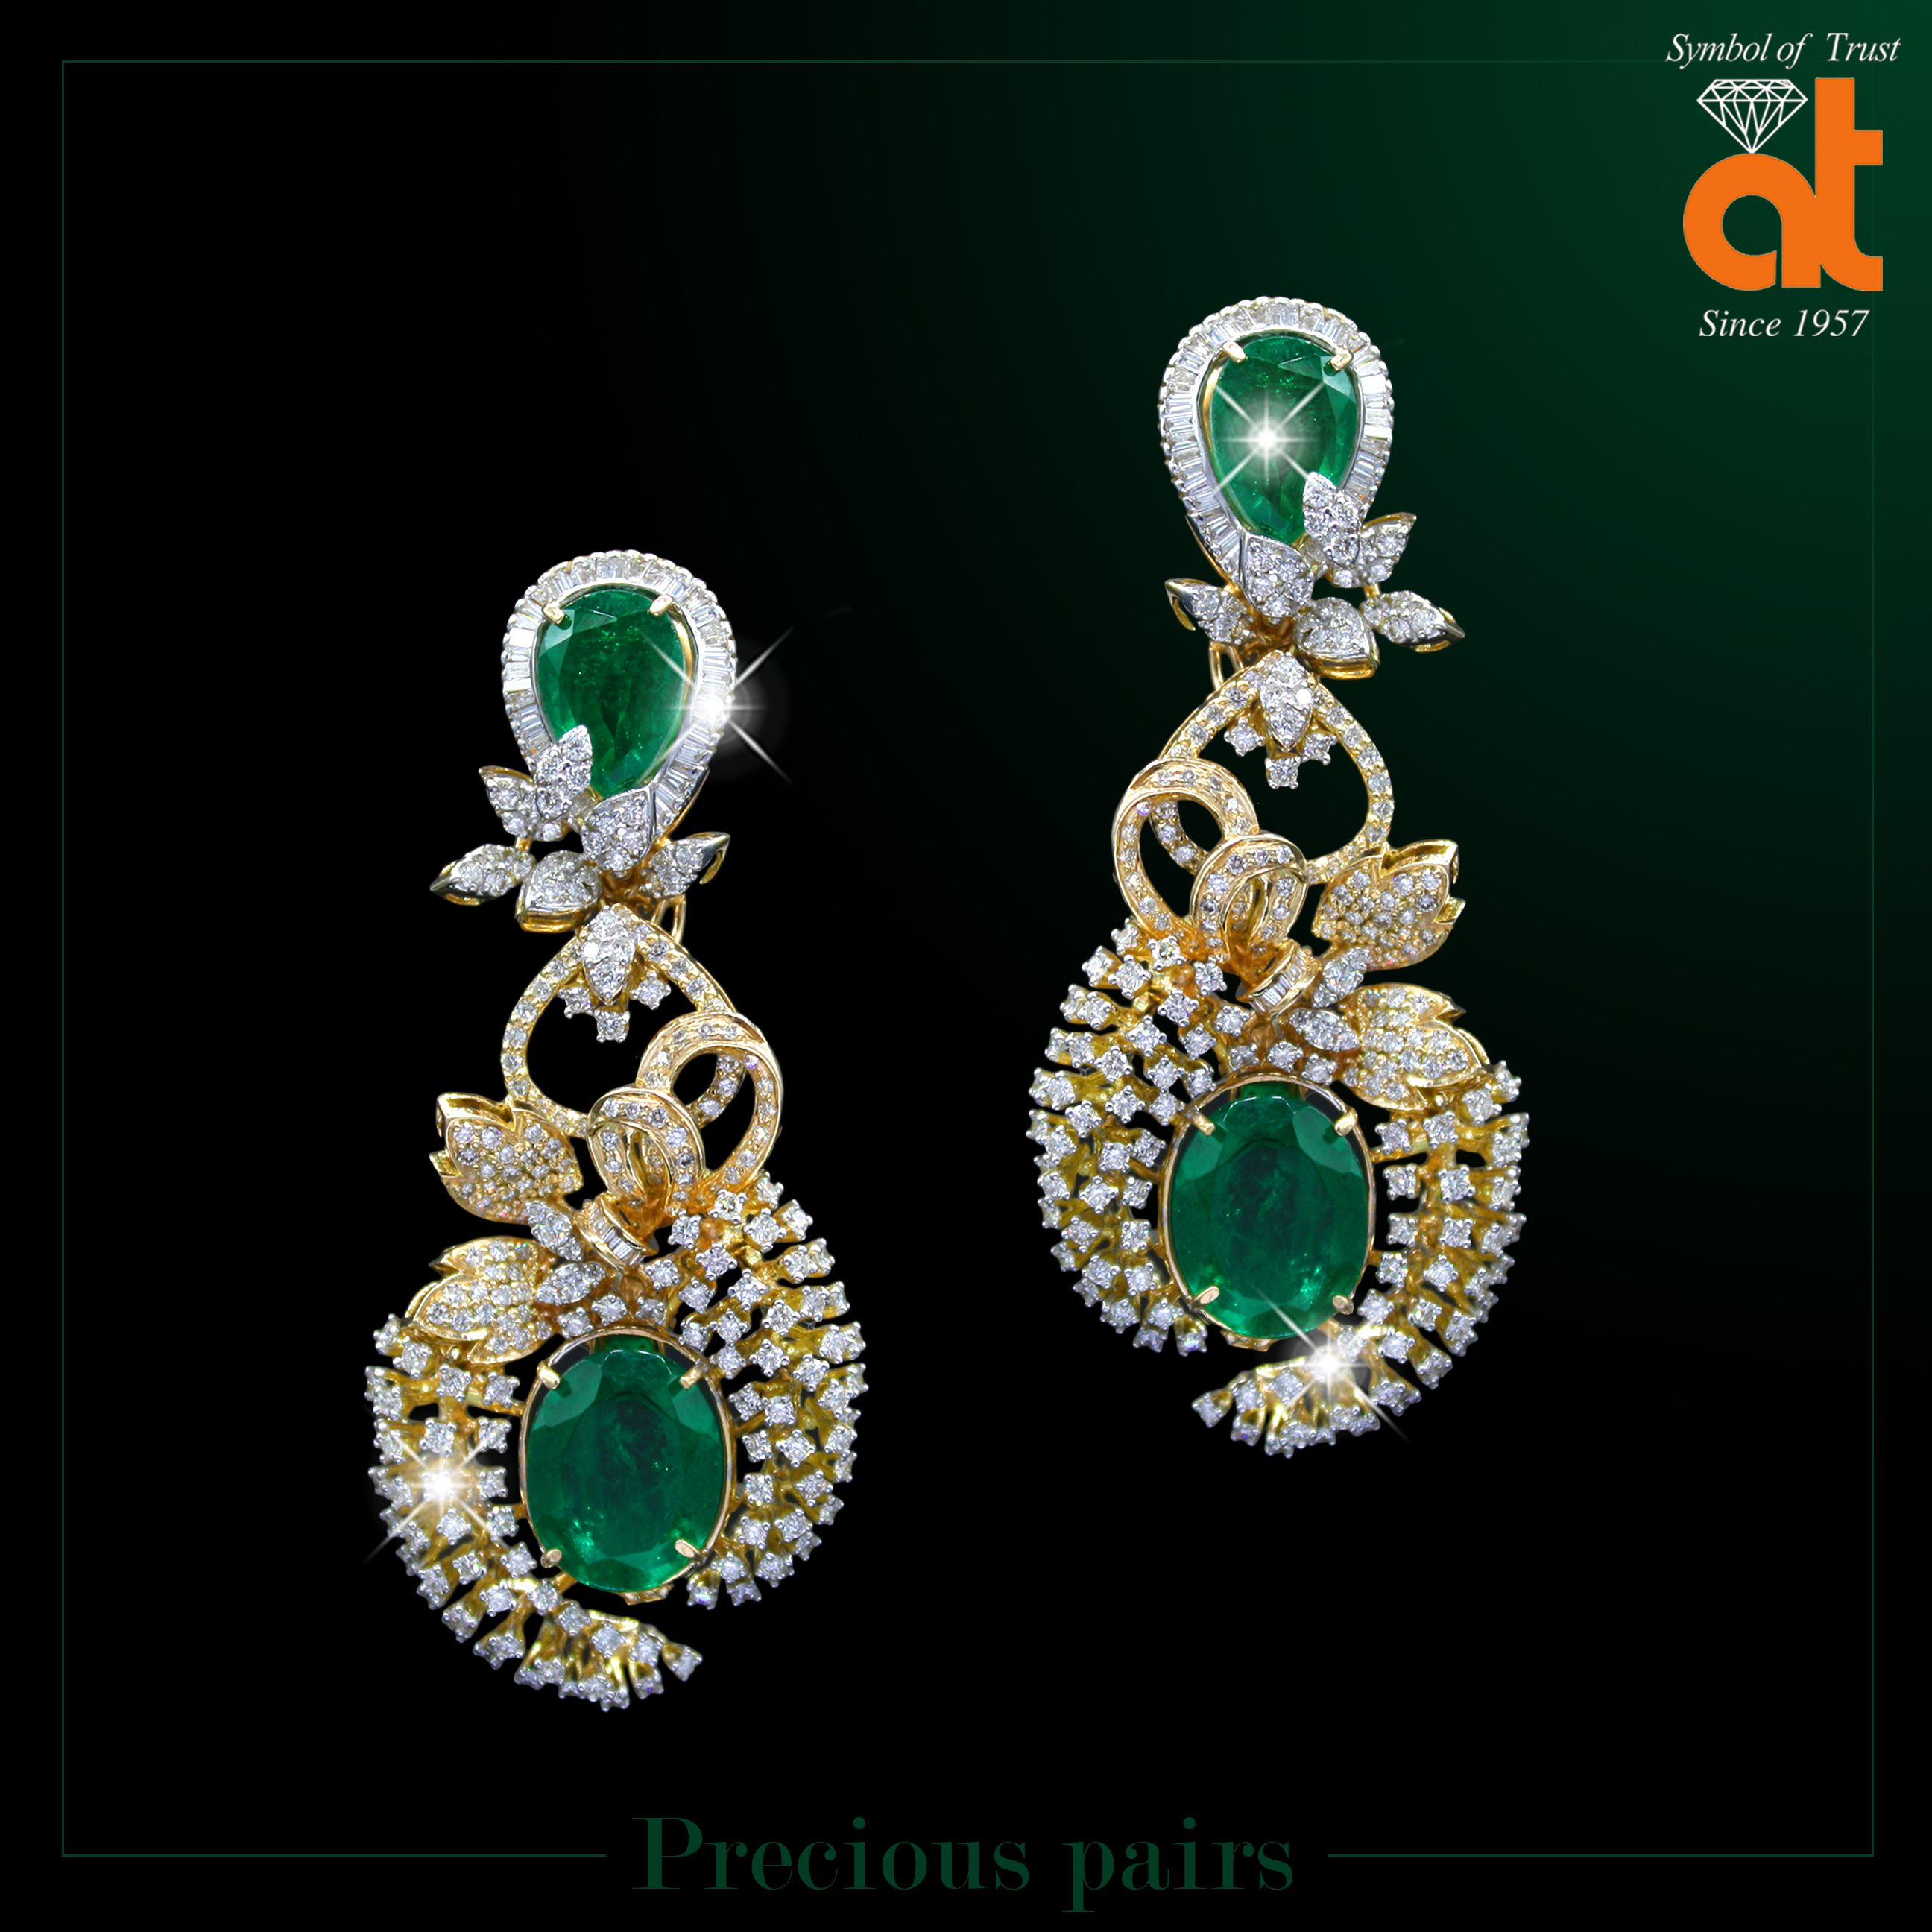 7d7b5c1e1 Designer Jewellery of Diamond Earrings sets in store #atjewellers  #wedjewels #anopchandtilokchandjewellers #polki #diamonds — at Anopchand  Tilokchand ...